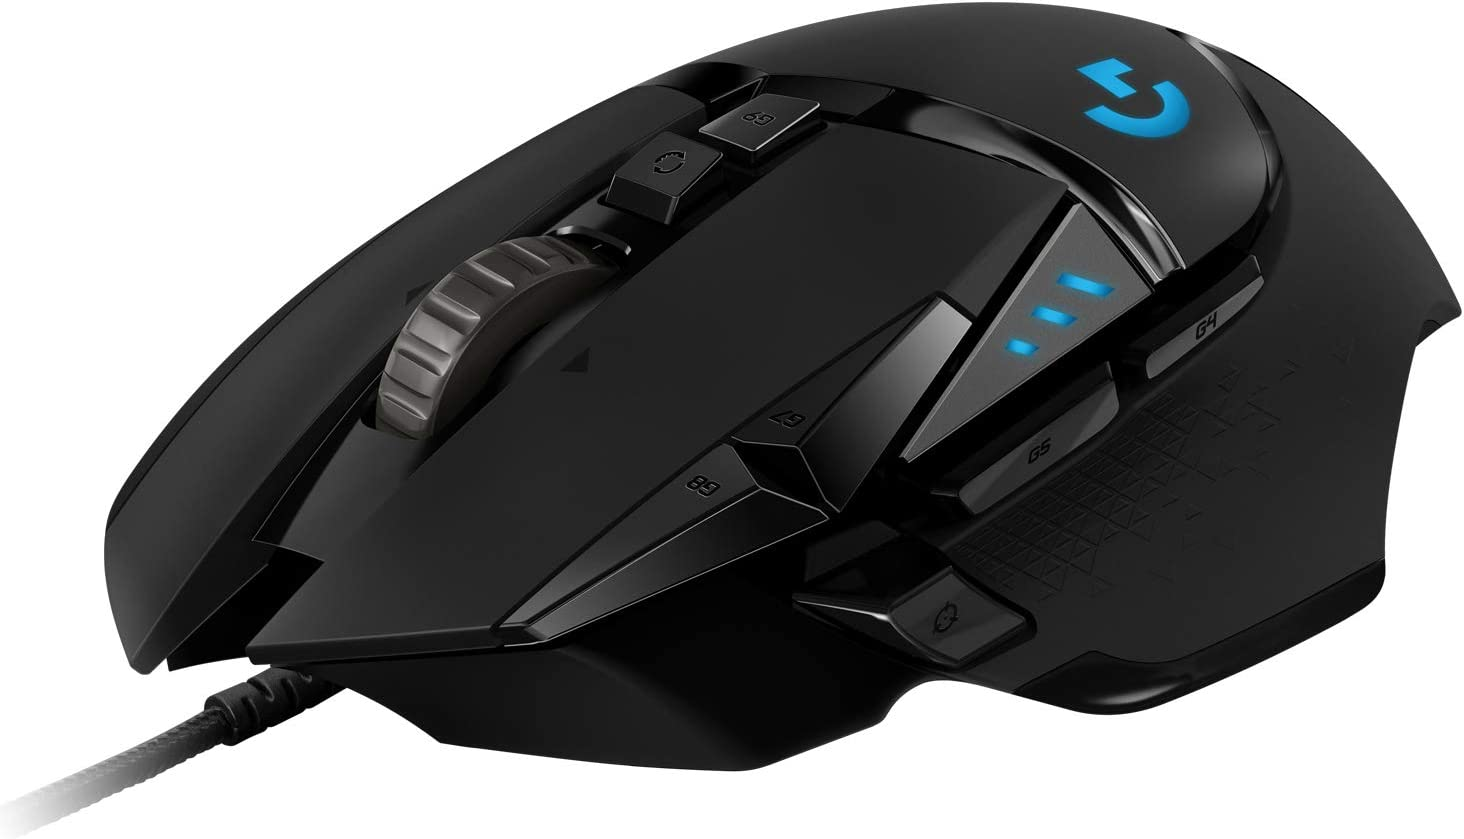 Logitech G502 HERO Ratón Gaming con Cable